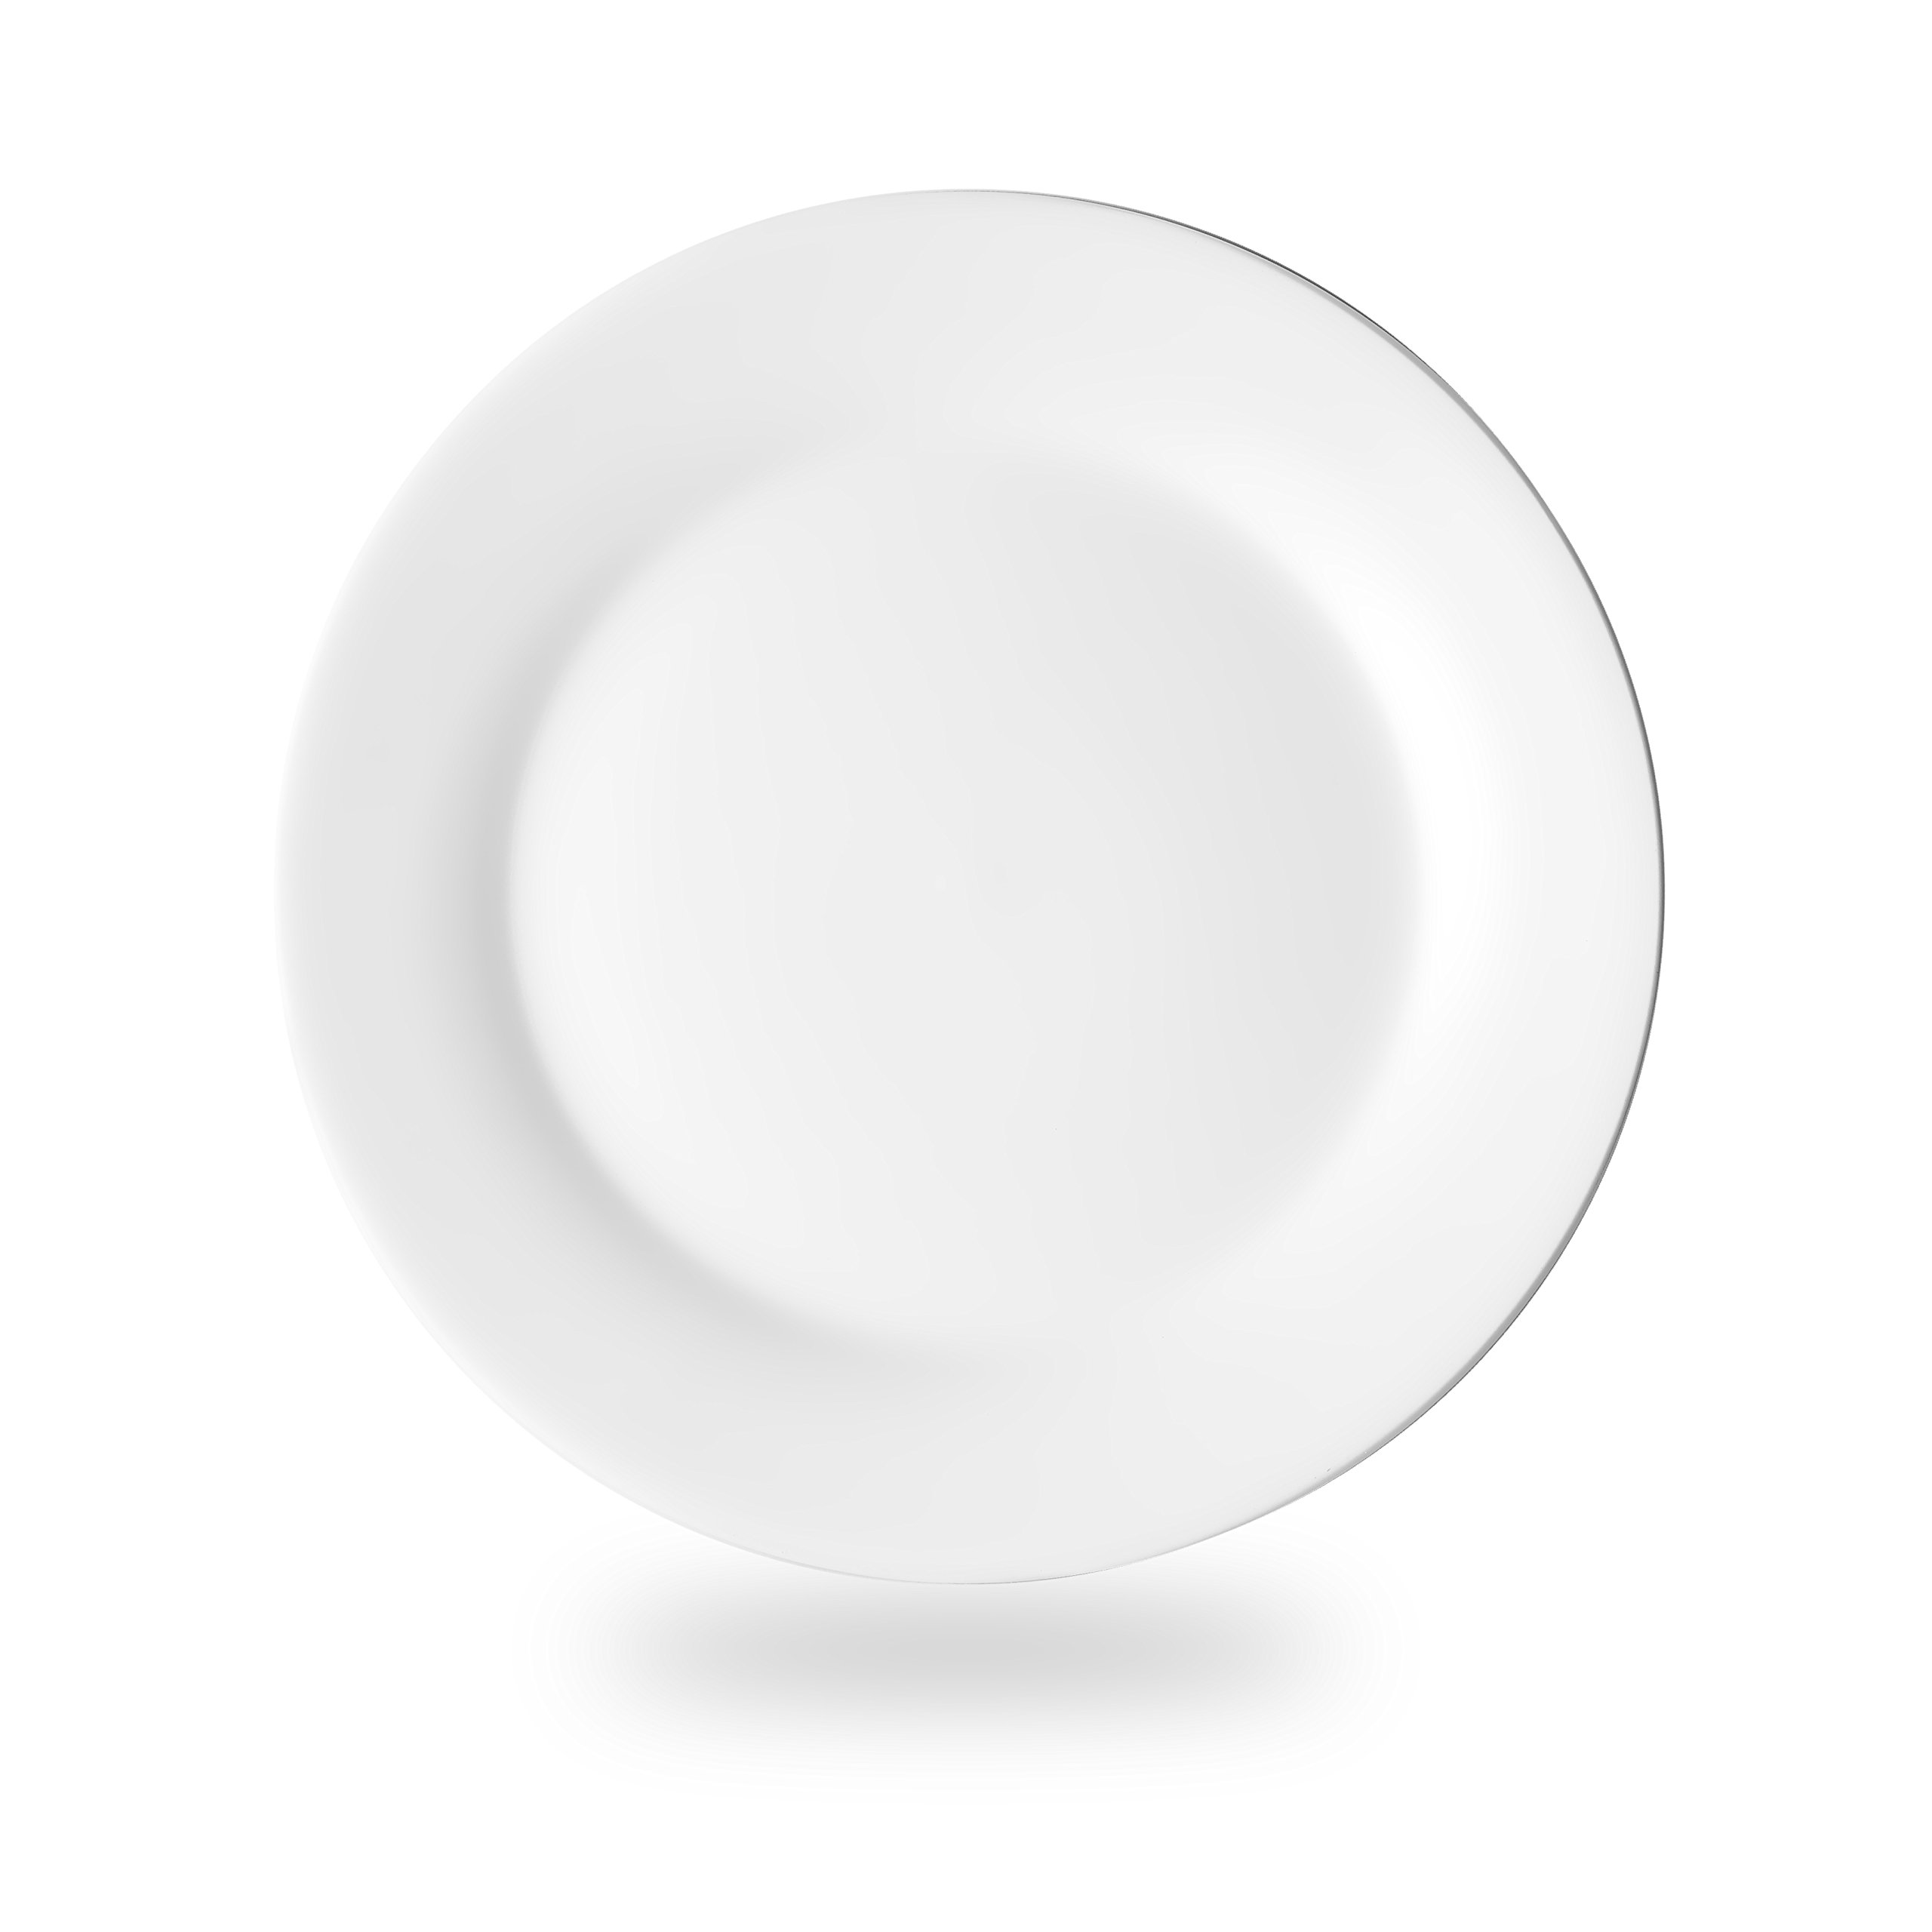 Nucookery 8 Inch White Dinner Plates | Porcelain Dishes | Medium, Microwave-Safe, Dishwasher-Safe 6pc Ceramic Dinnerware Set (8 Inch)